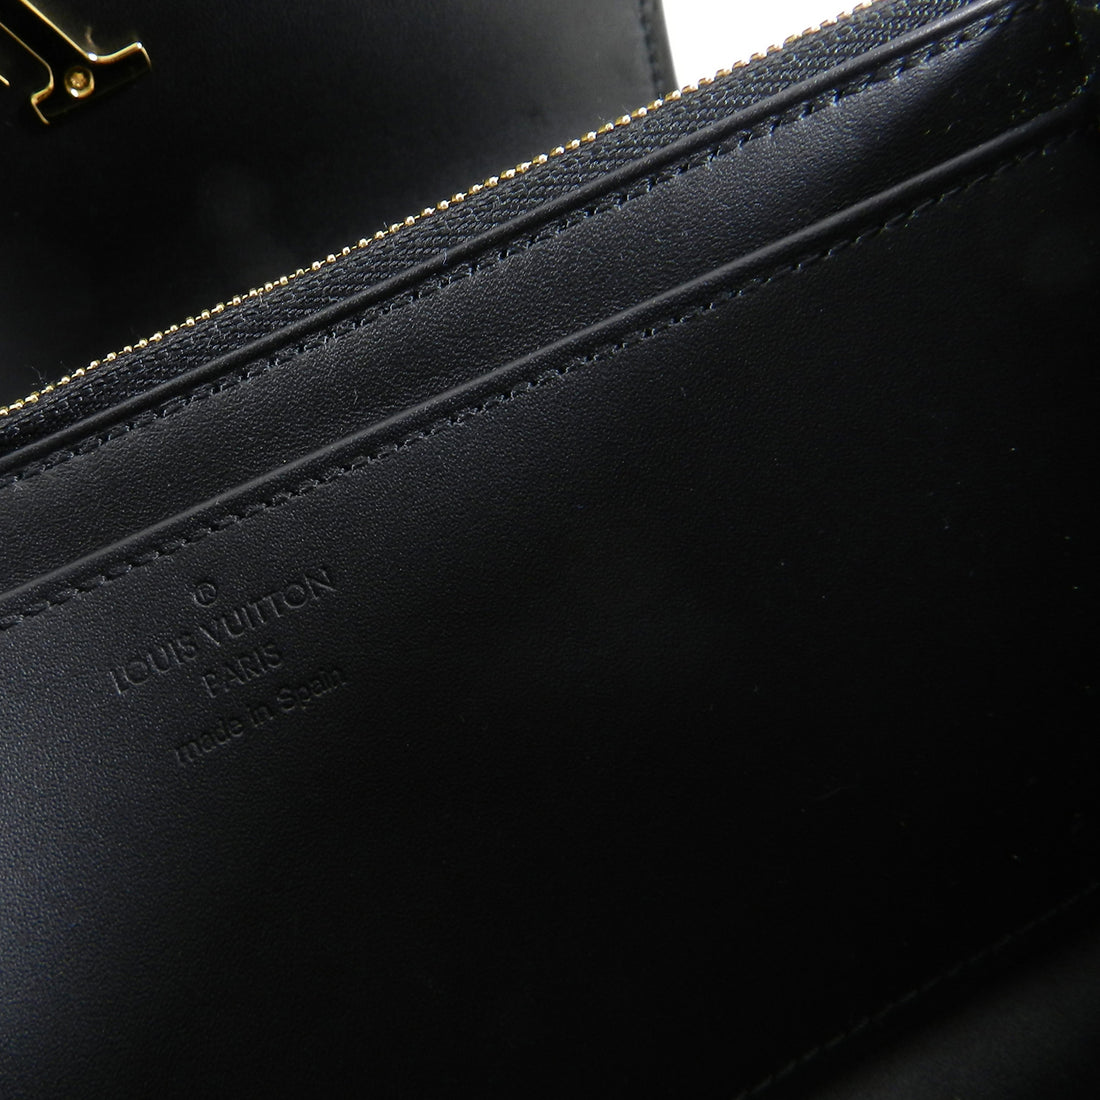 Louis Vuitton Black Vernis Louise Wallet with Gold-Tone LV Logo